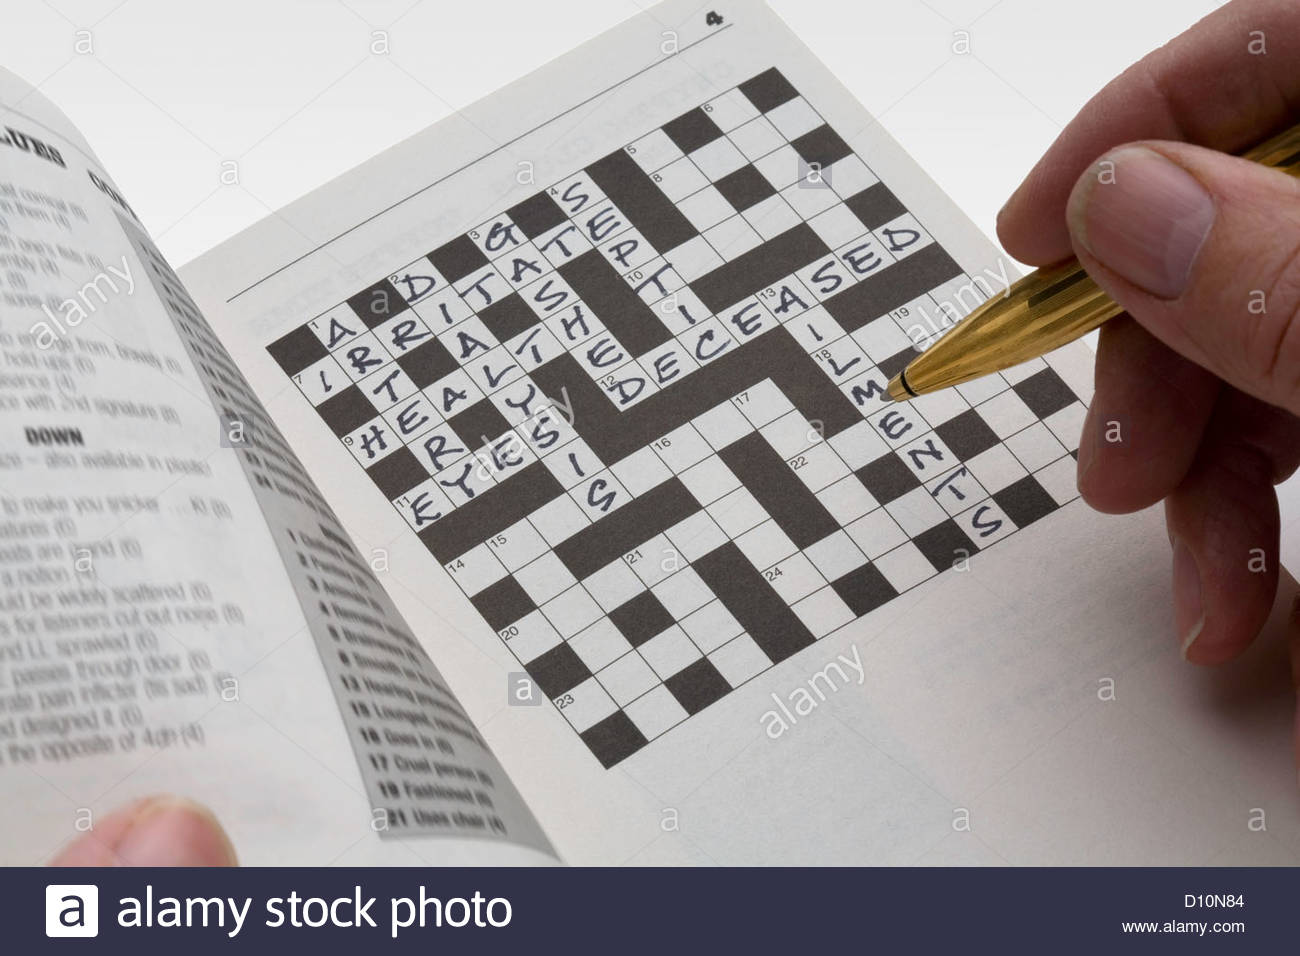 Man filling is a crossword puzzle relating to health. - Stock Image